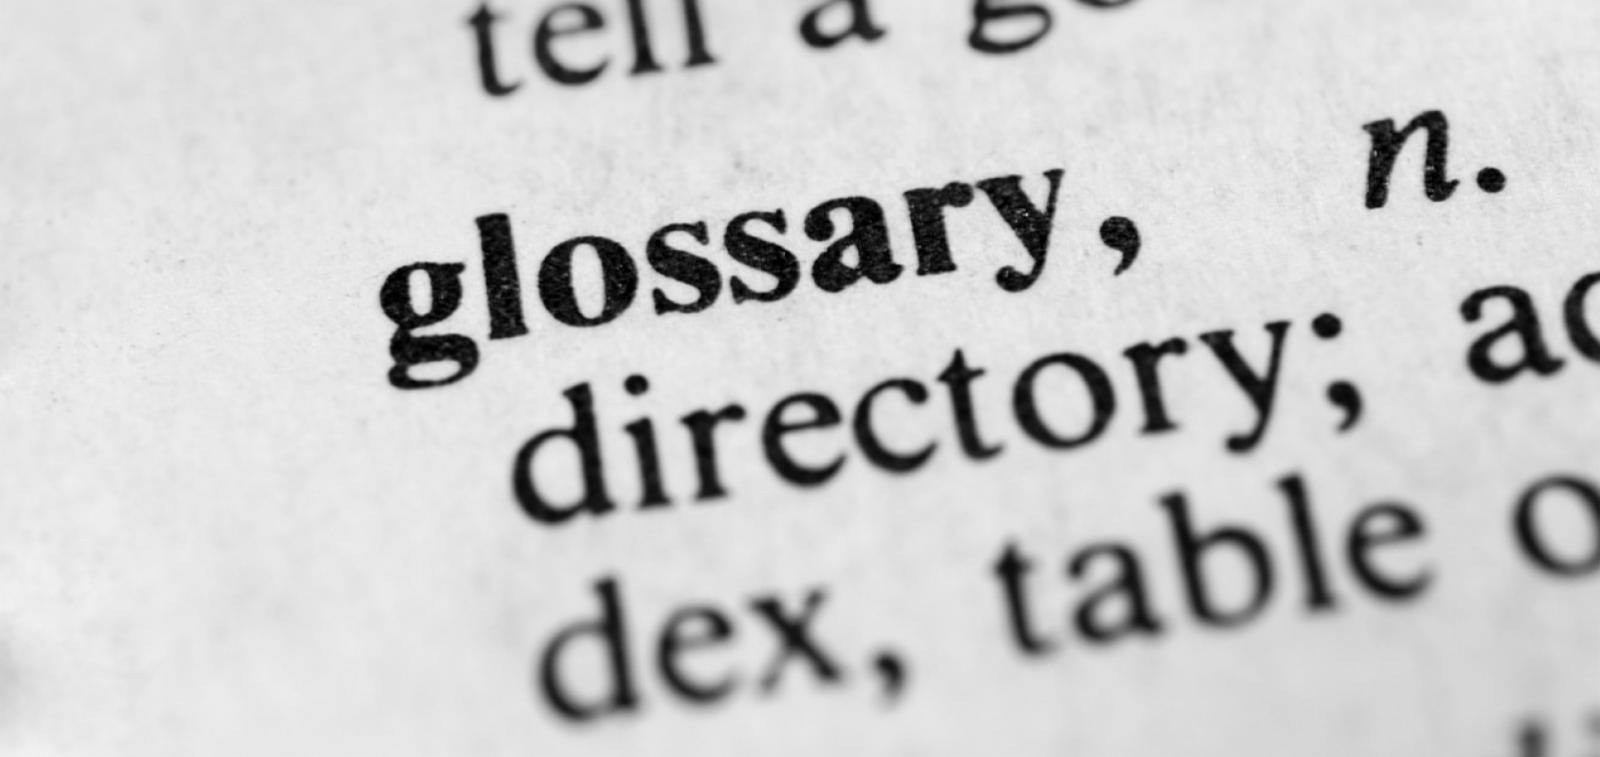 Glossary page displaying the word glossary.